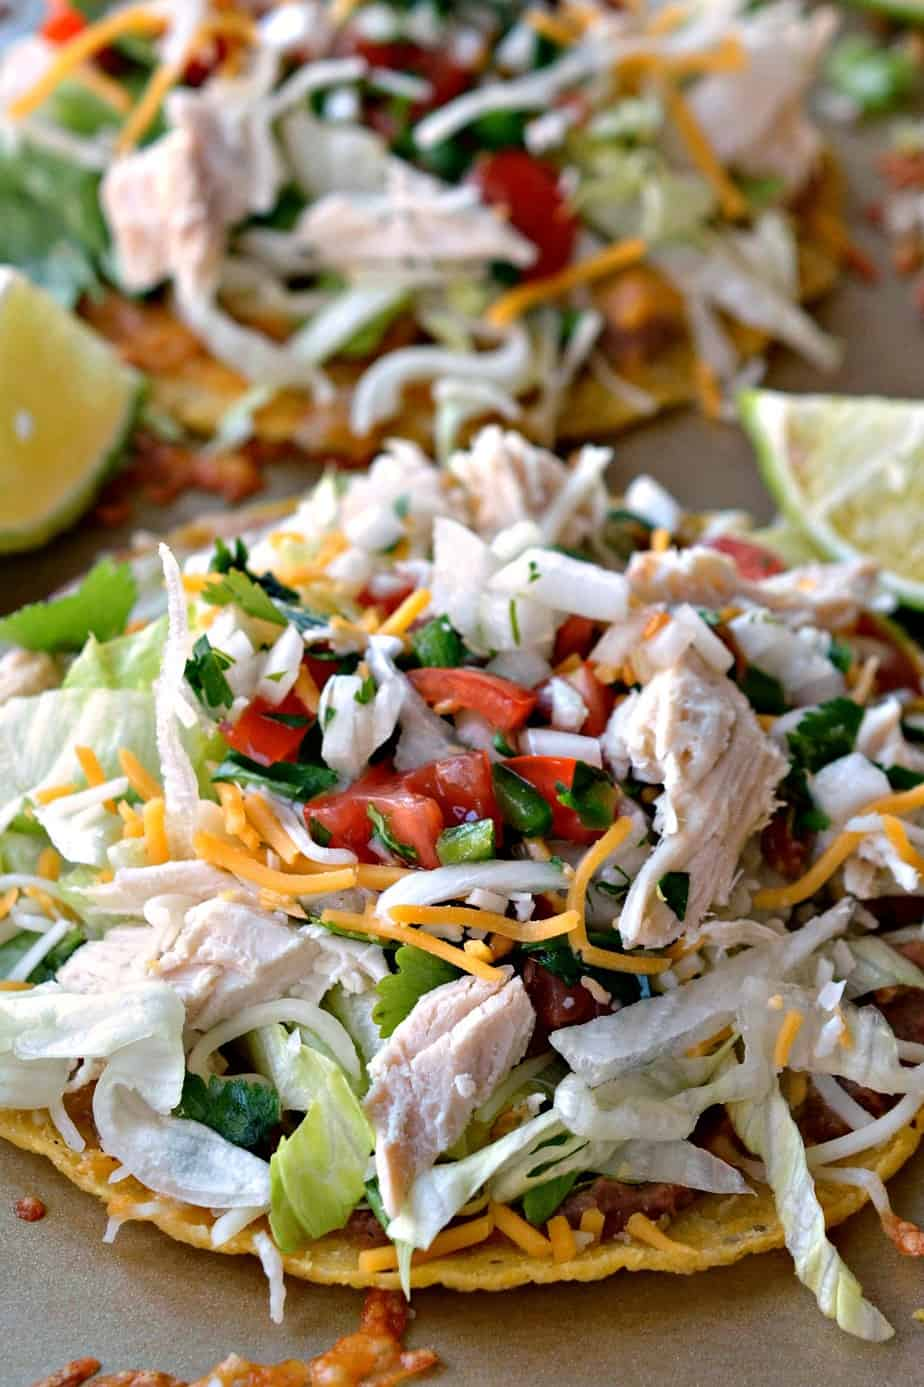 Fun and Easy Tex Mex Chicken Tostadas made with homemade pico de gallo, rotisserie chicken, and plenty cheese.